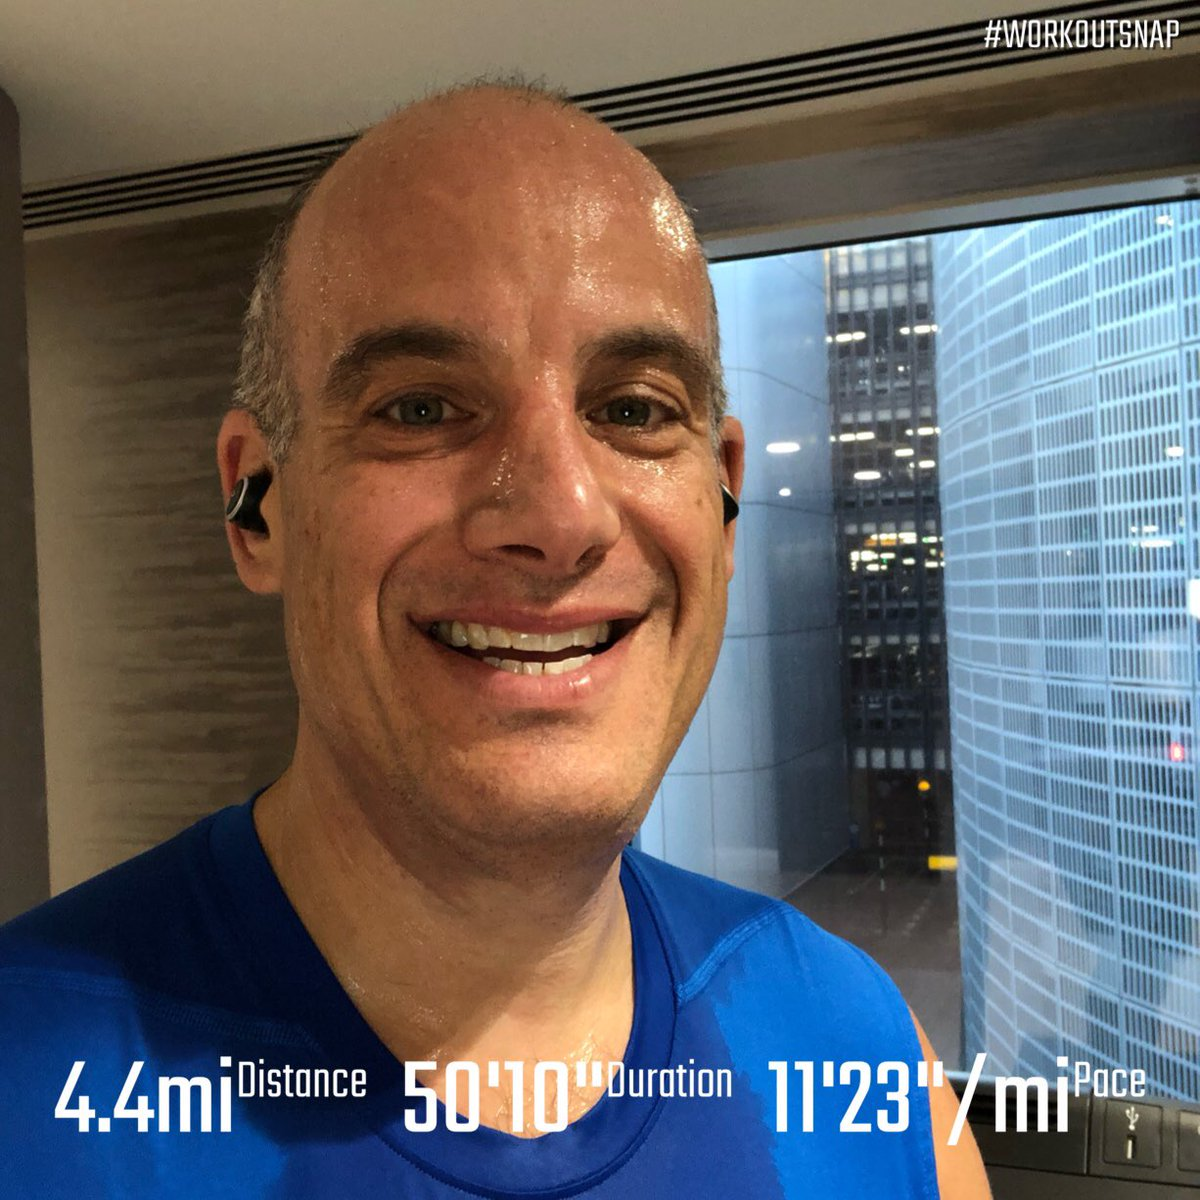 When your hotel is attached to the airport, you have no choice but to do a treadmill run. #athlinksignited #teamnuun #tritraining #instarunners #runnersworld #runnerslife #runhappy #runnerscommunity #fitnessmotivation #fitnessjourney #workoutsnap #worldrunner #azrunner #england<br>http://pic.twitter.com/tHGAlUqgsa